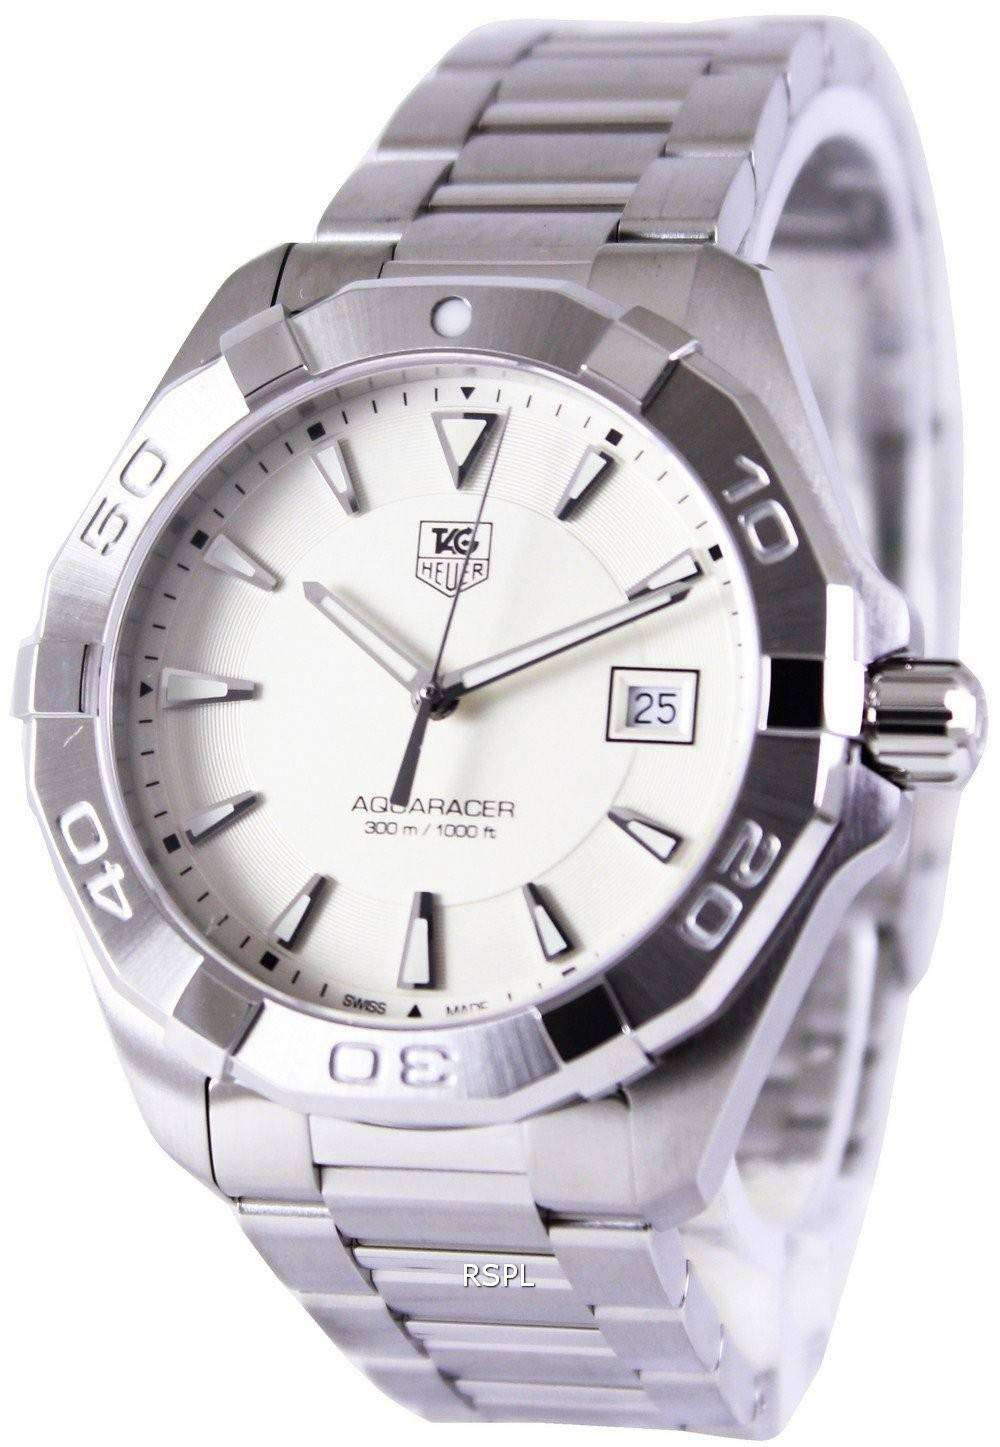 Tag heuer aquaracer silver dial 300m way1111 ba0910 mens watch downunderwatches for The tag heuer aquaracer